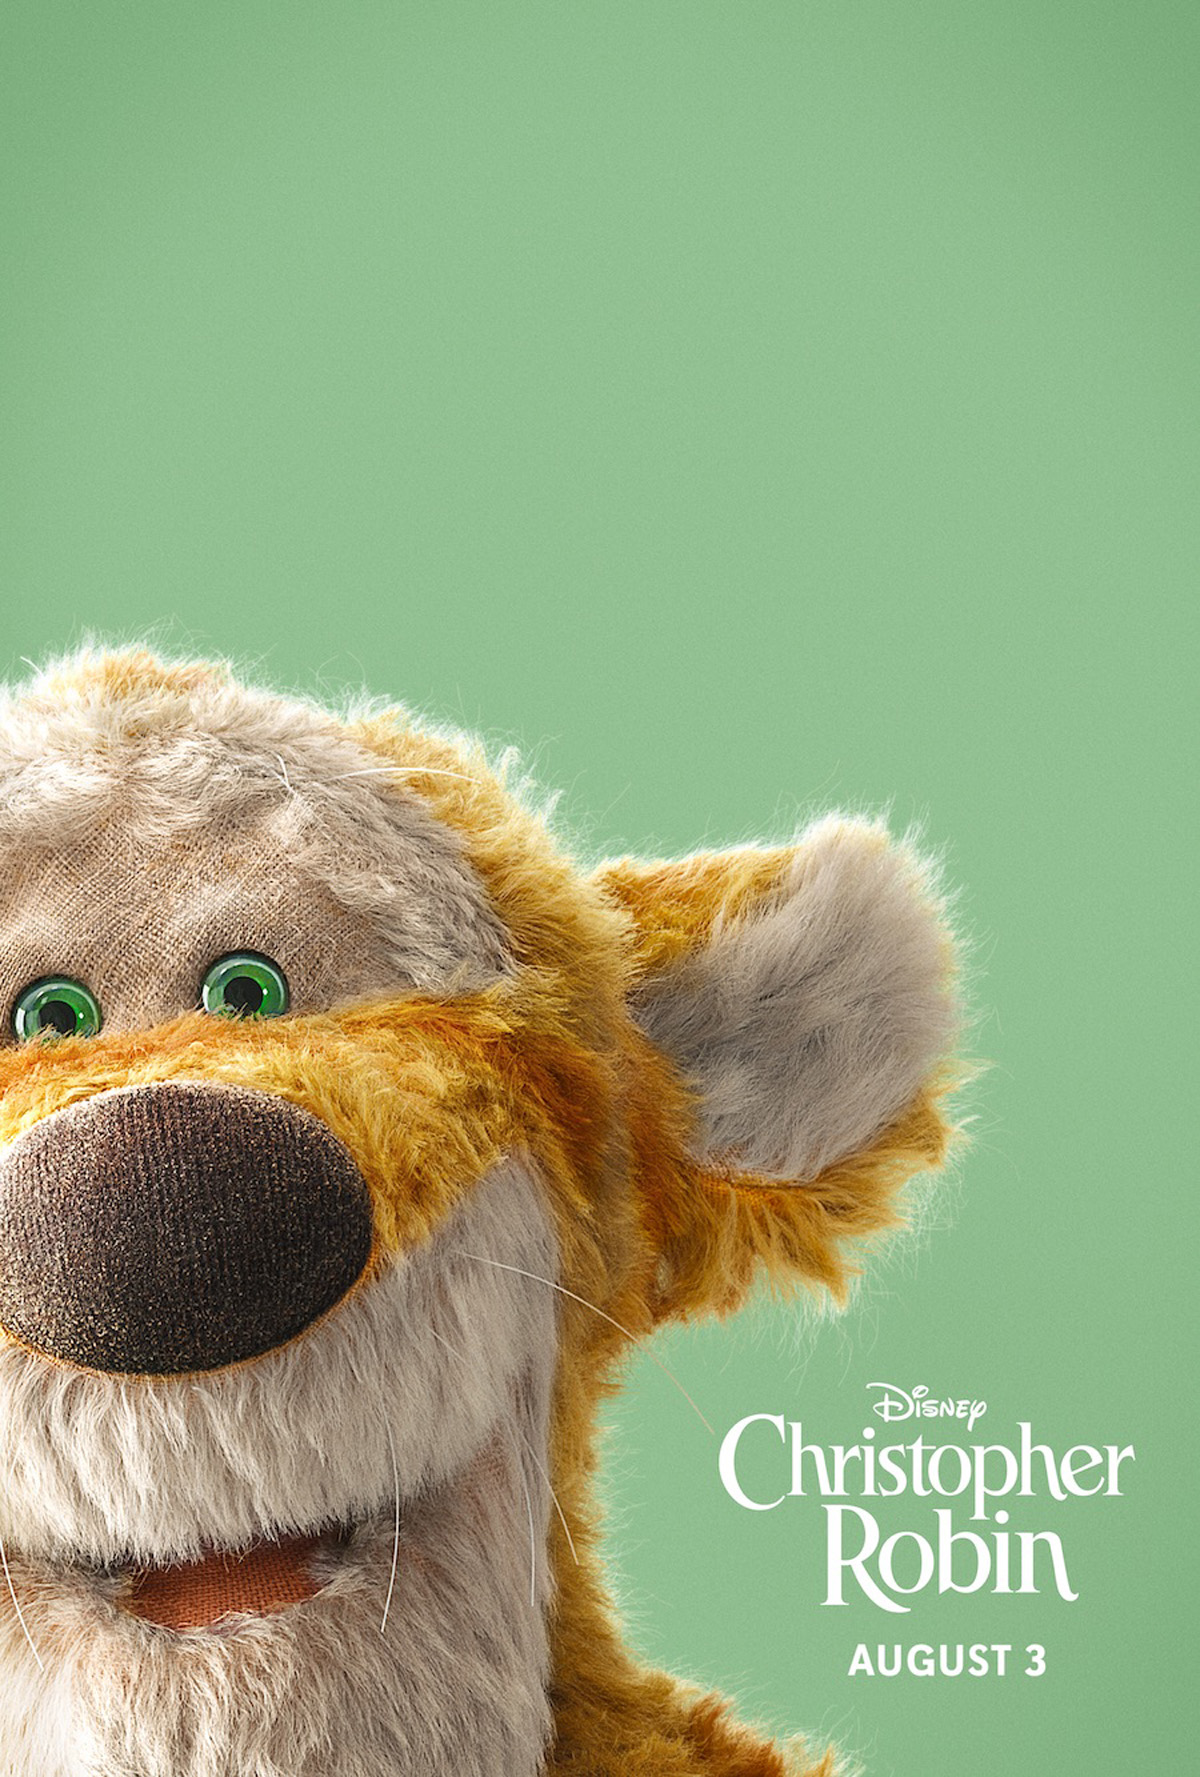 Disney's Christopher Robin